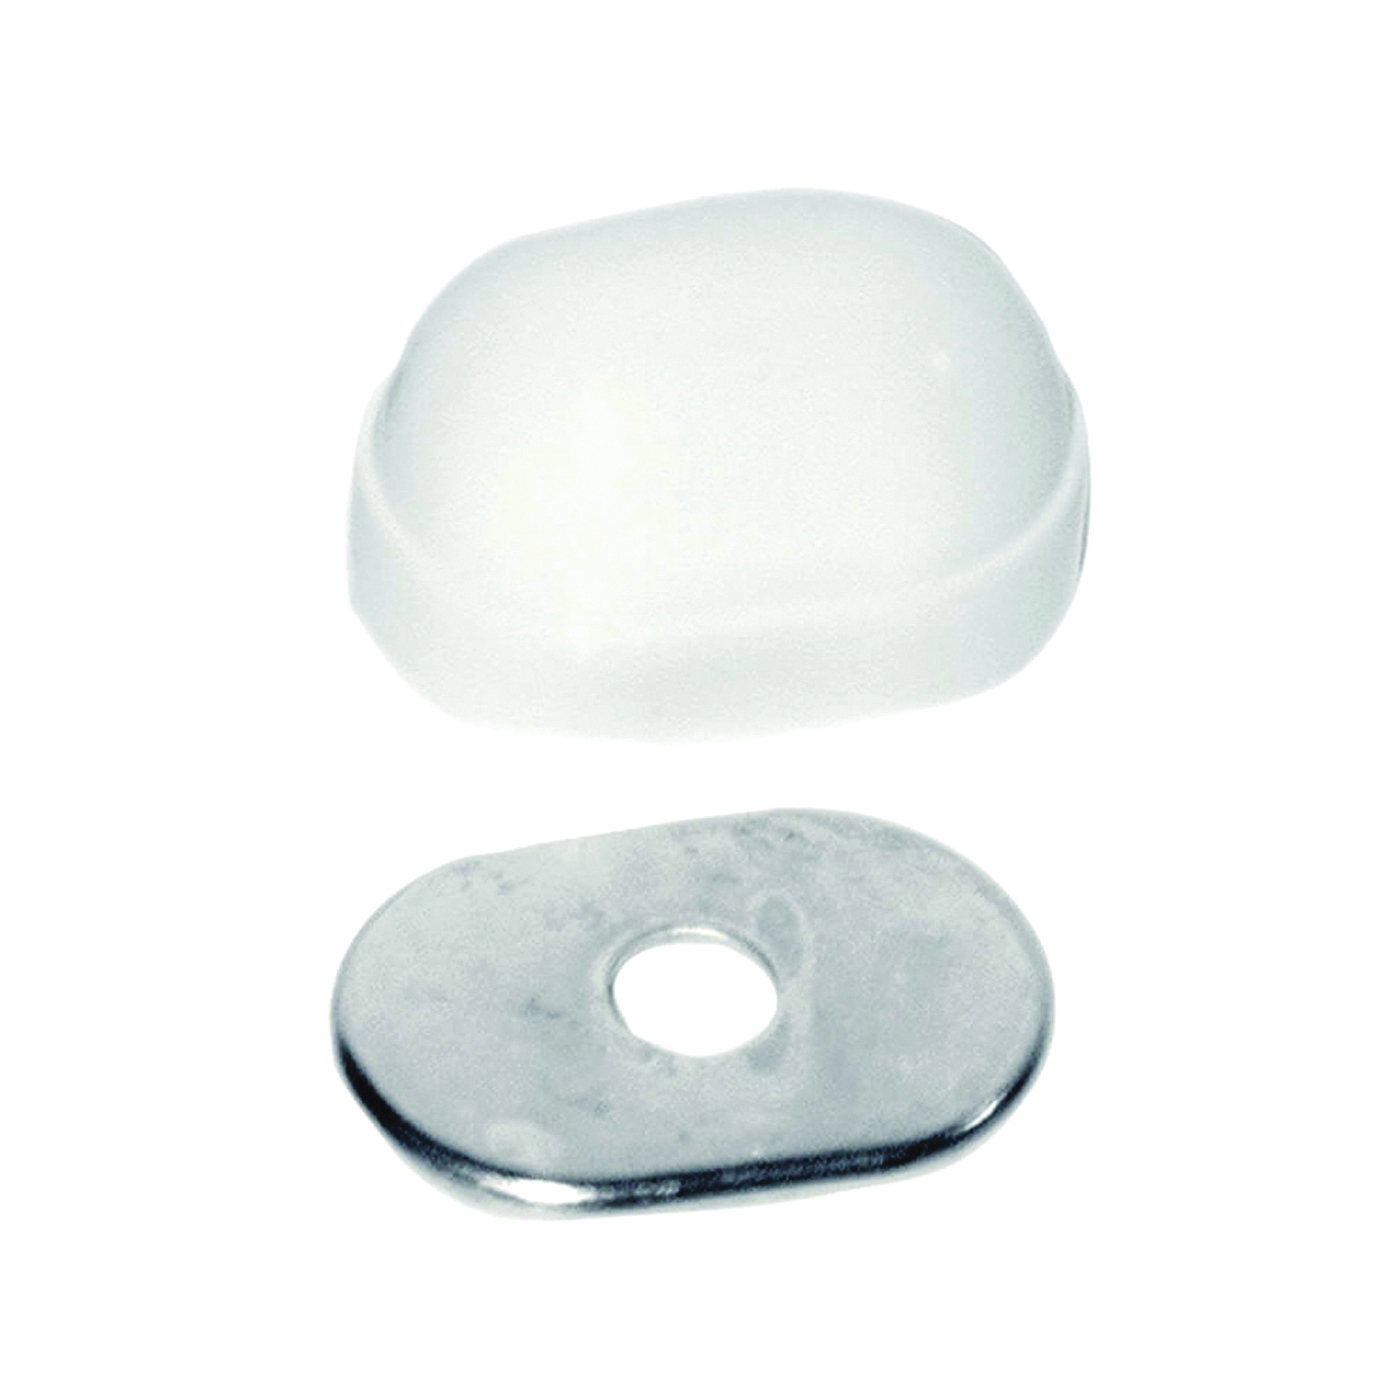 Picture of Danco 88970 Closet Bolt Cap, Plastic